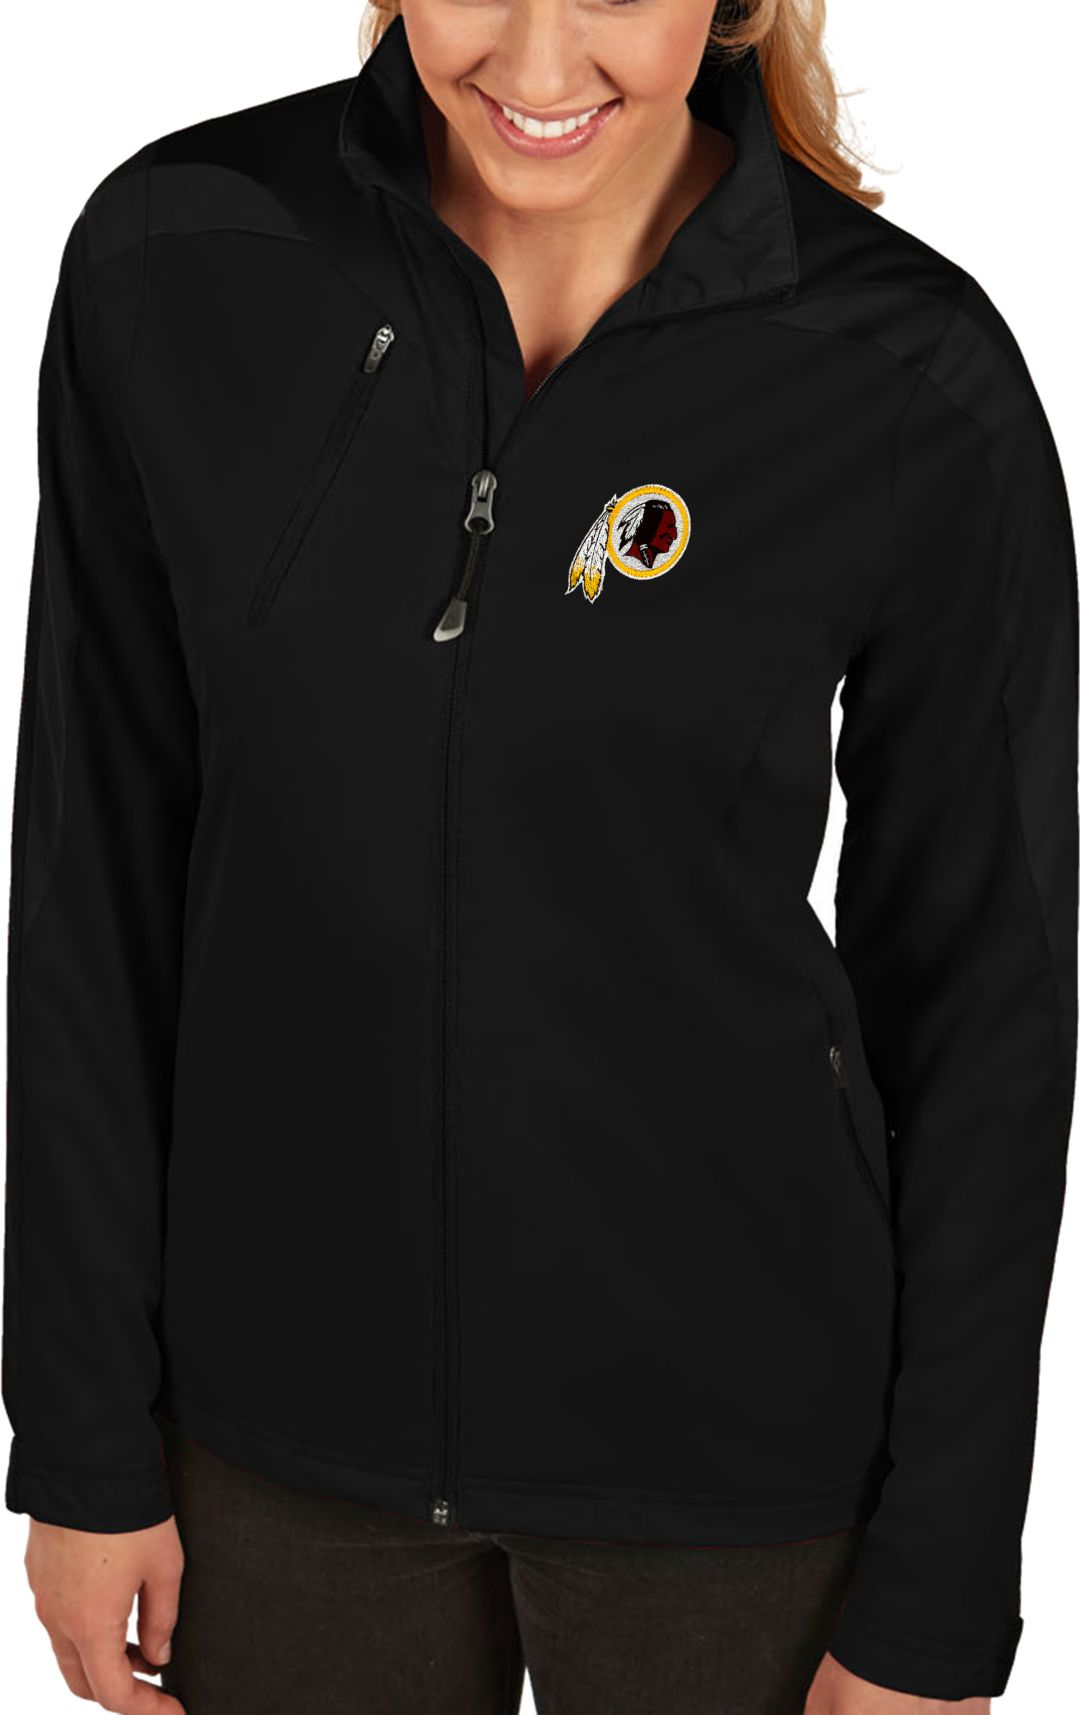 cheap for discount 4febc 64dee Antigua Women's Washington Redskins Discover Full-Zip Jacket